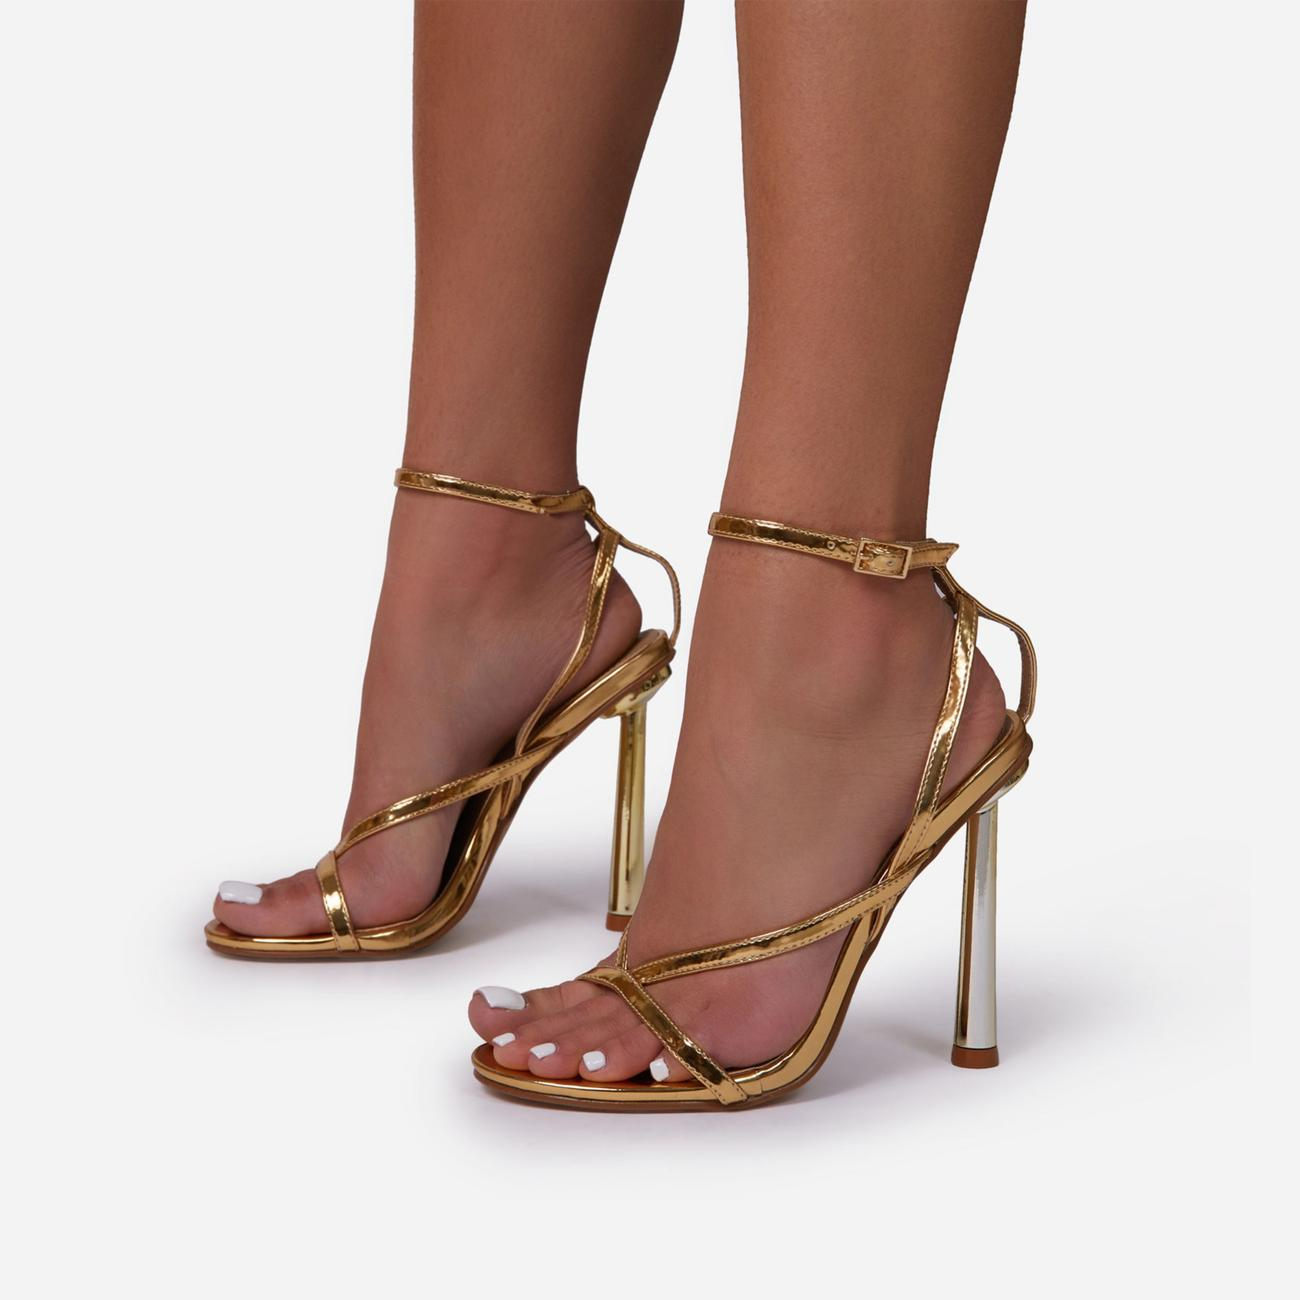 Yasmin Strappy Heel In Metallic Gold Faux Leather Image 2